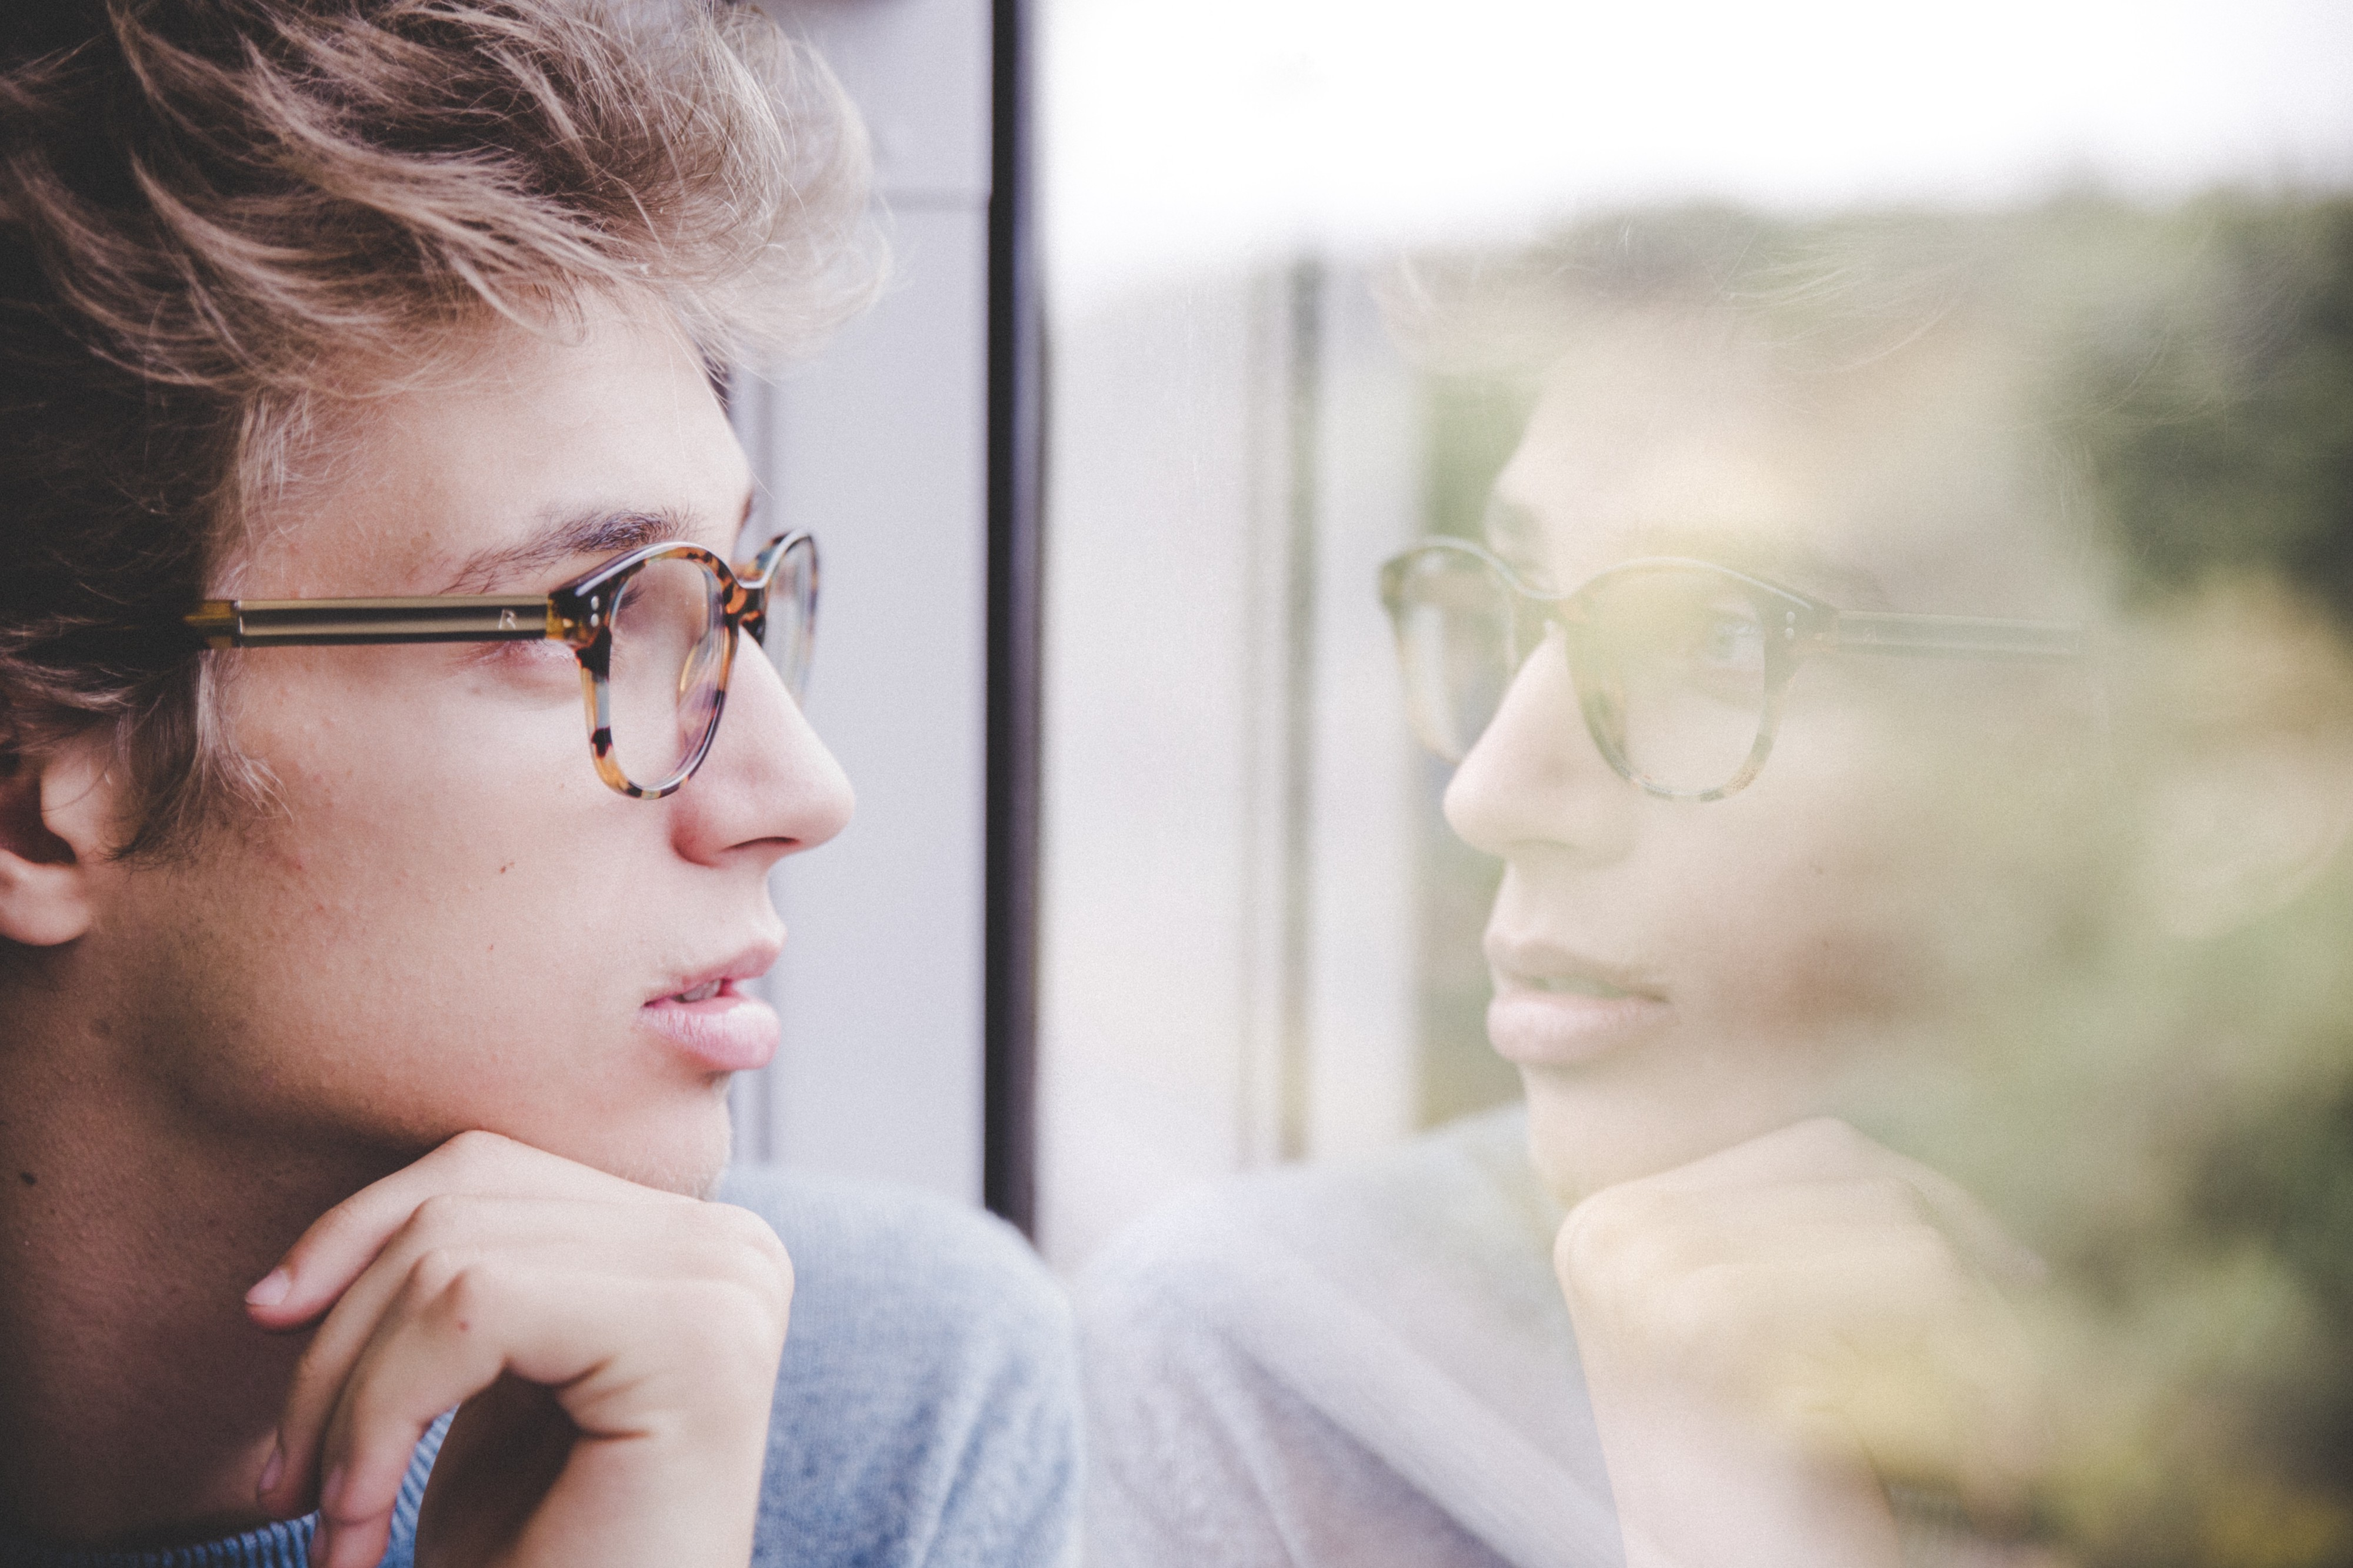 Young man with glasses looking contemplativly at his reflection.